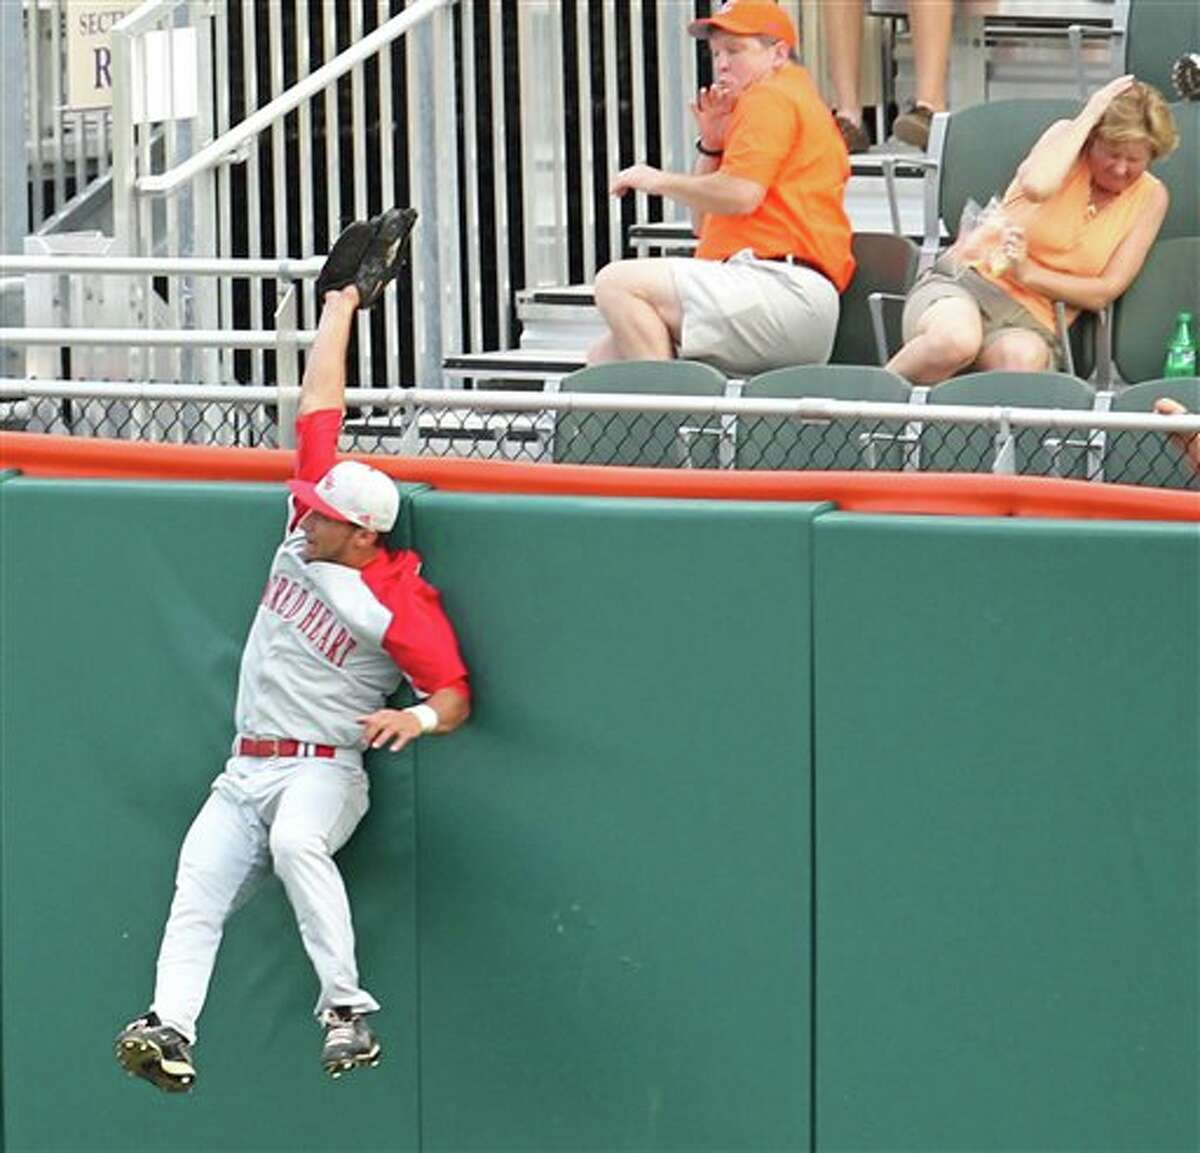 Sacred Heart right fielder Dave Boisture makes a leaping catch at the fence as he robs Clemson batter Richie Shaffer of a home run during an NCAA college baseball tournament game at Doug Kingsmore Stadium in Clemson, S.C. on Friday, June 3, 2011. (AP Photo/Anderson Independent-Mail, Mark Crammer)